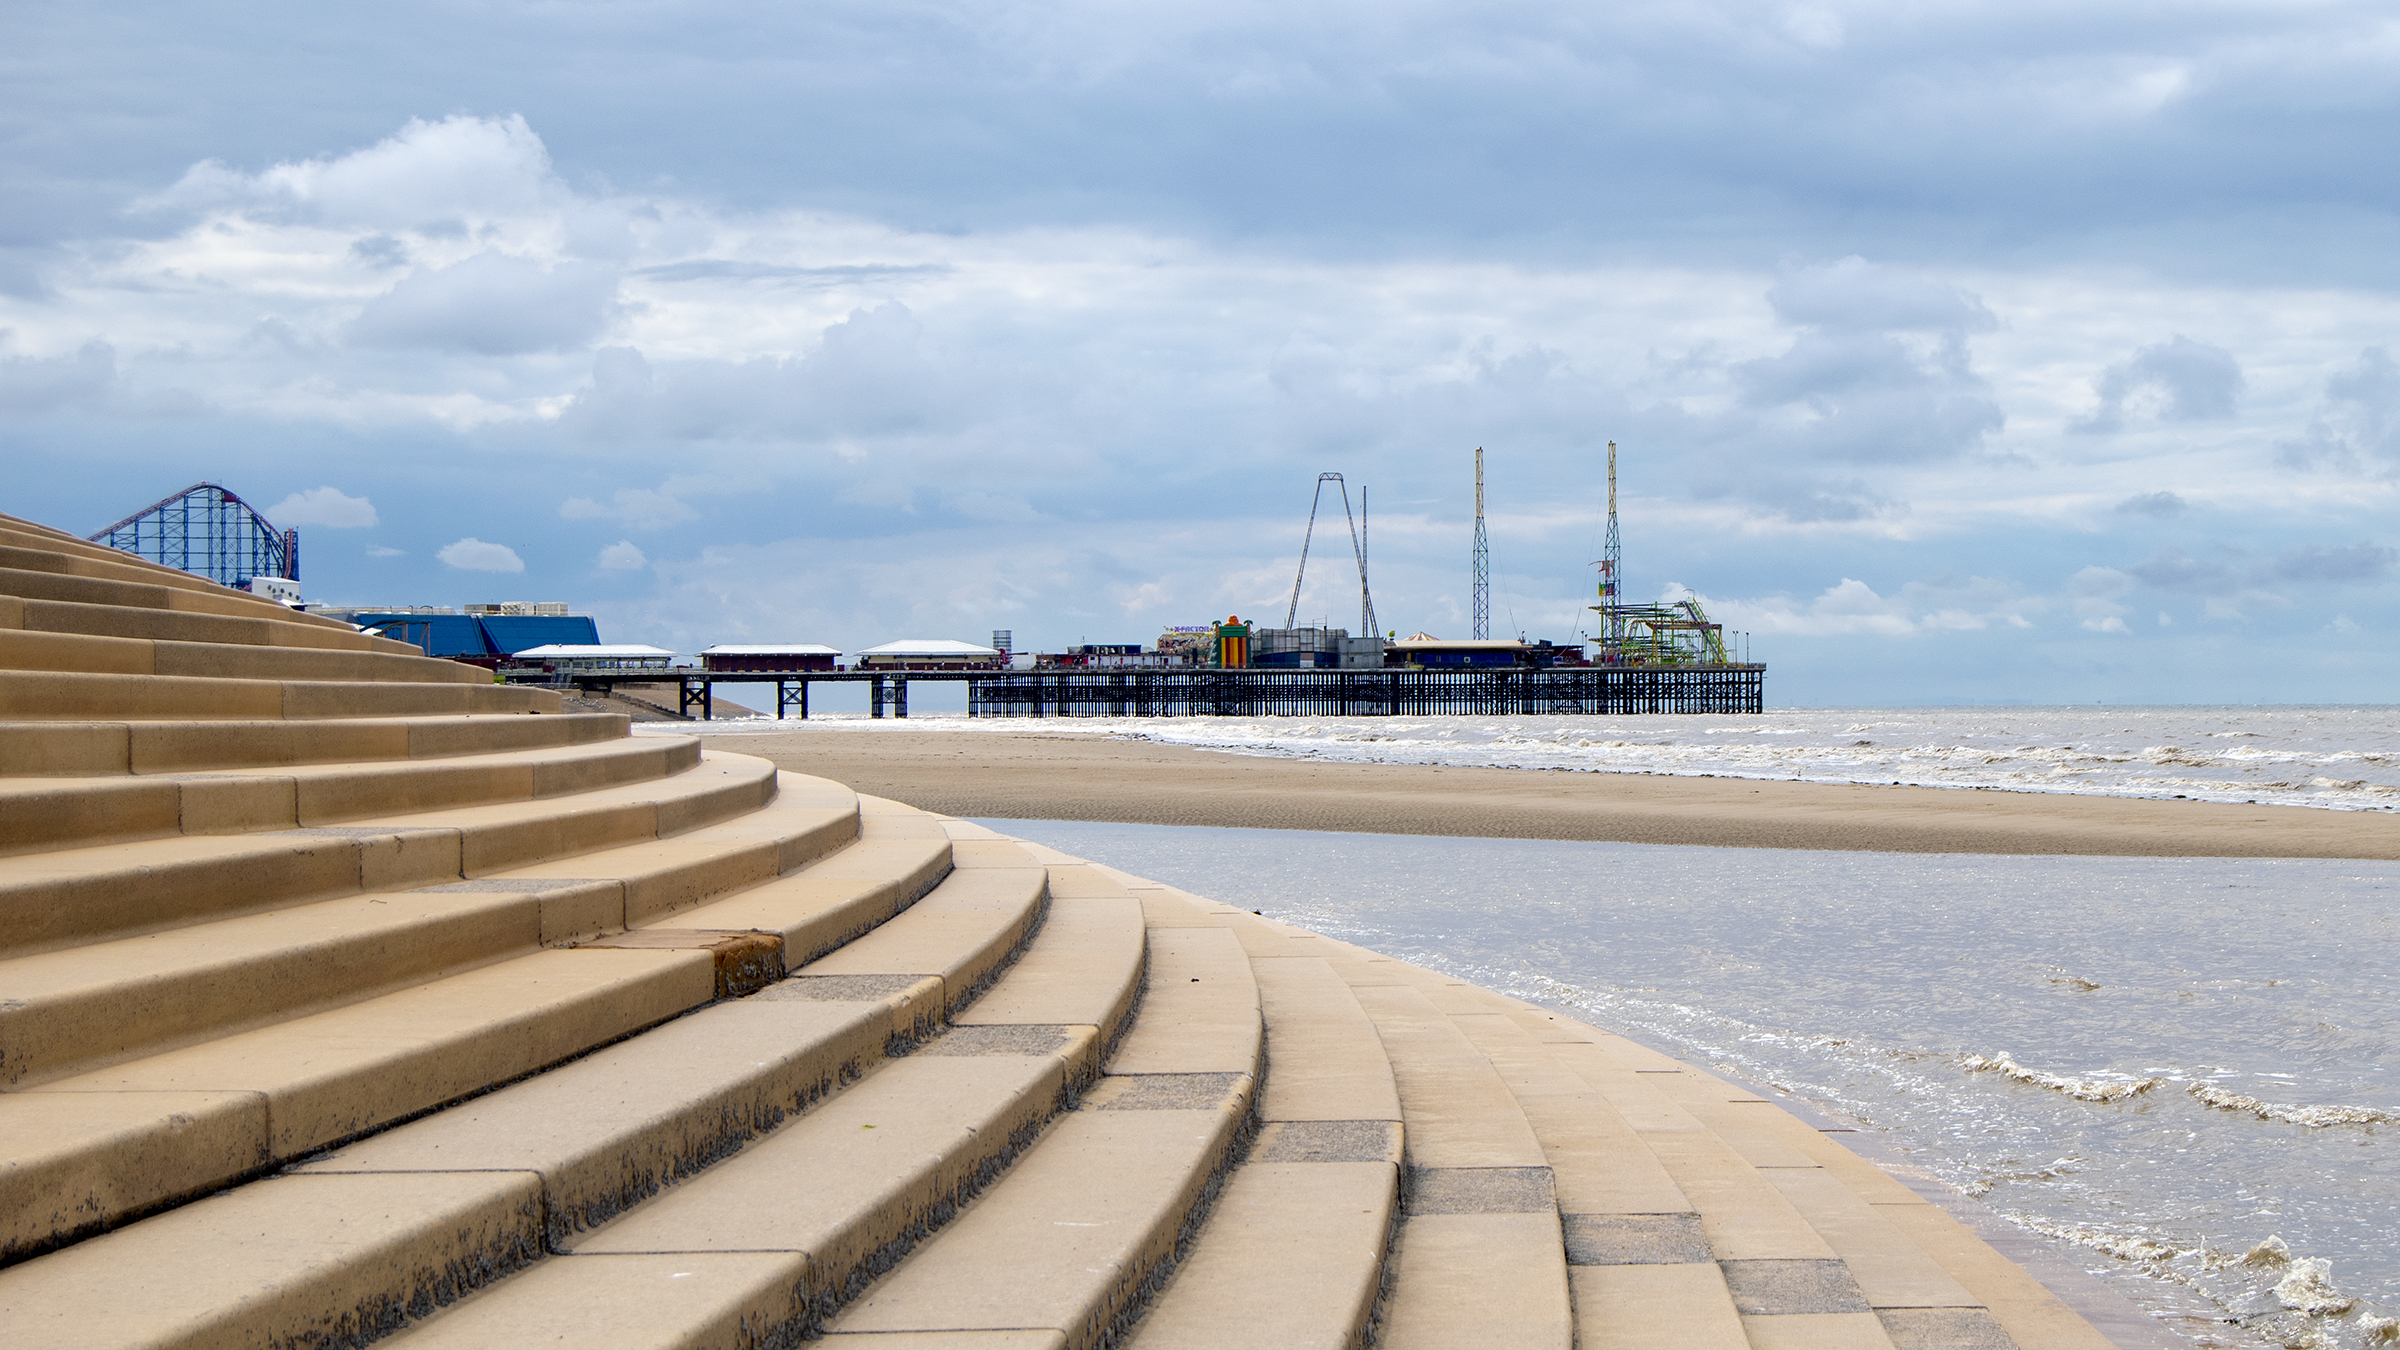 Blackpool's South Pier